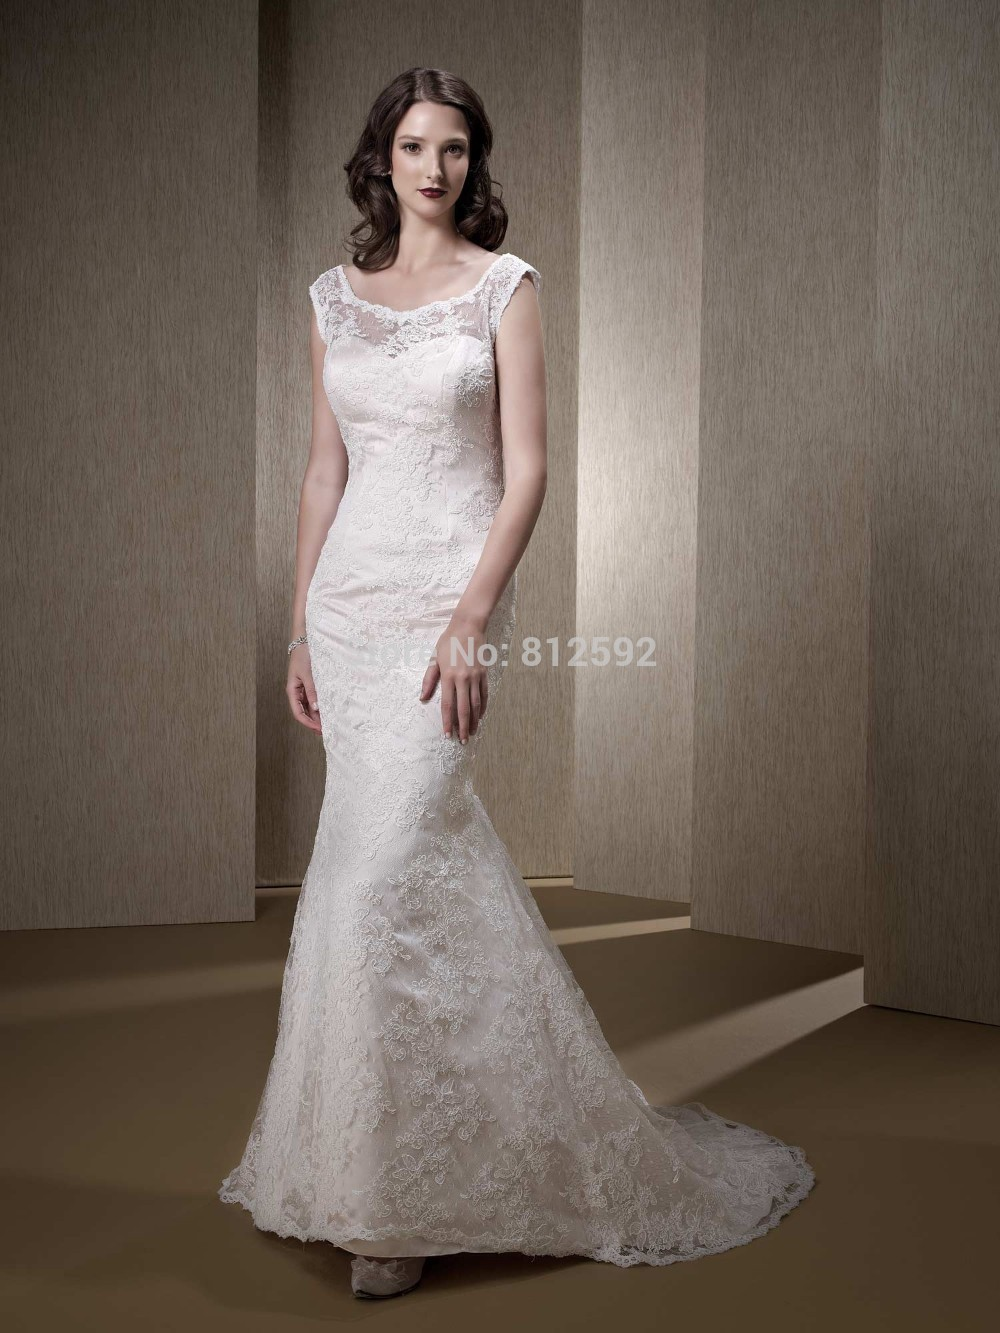 Vintage a line princess wedding dresses 2014 lace covered for Wedding dresses for womens